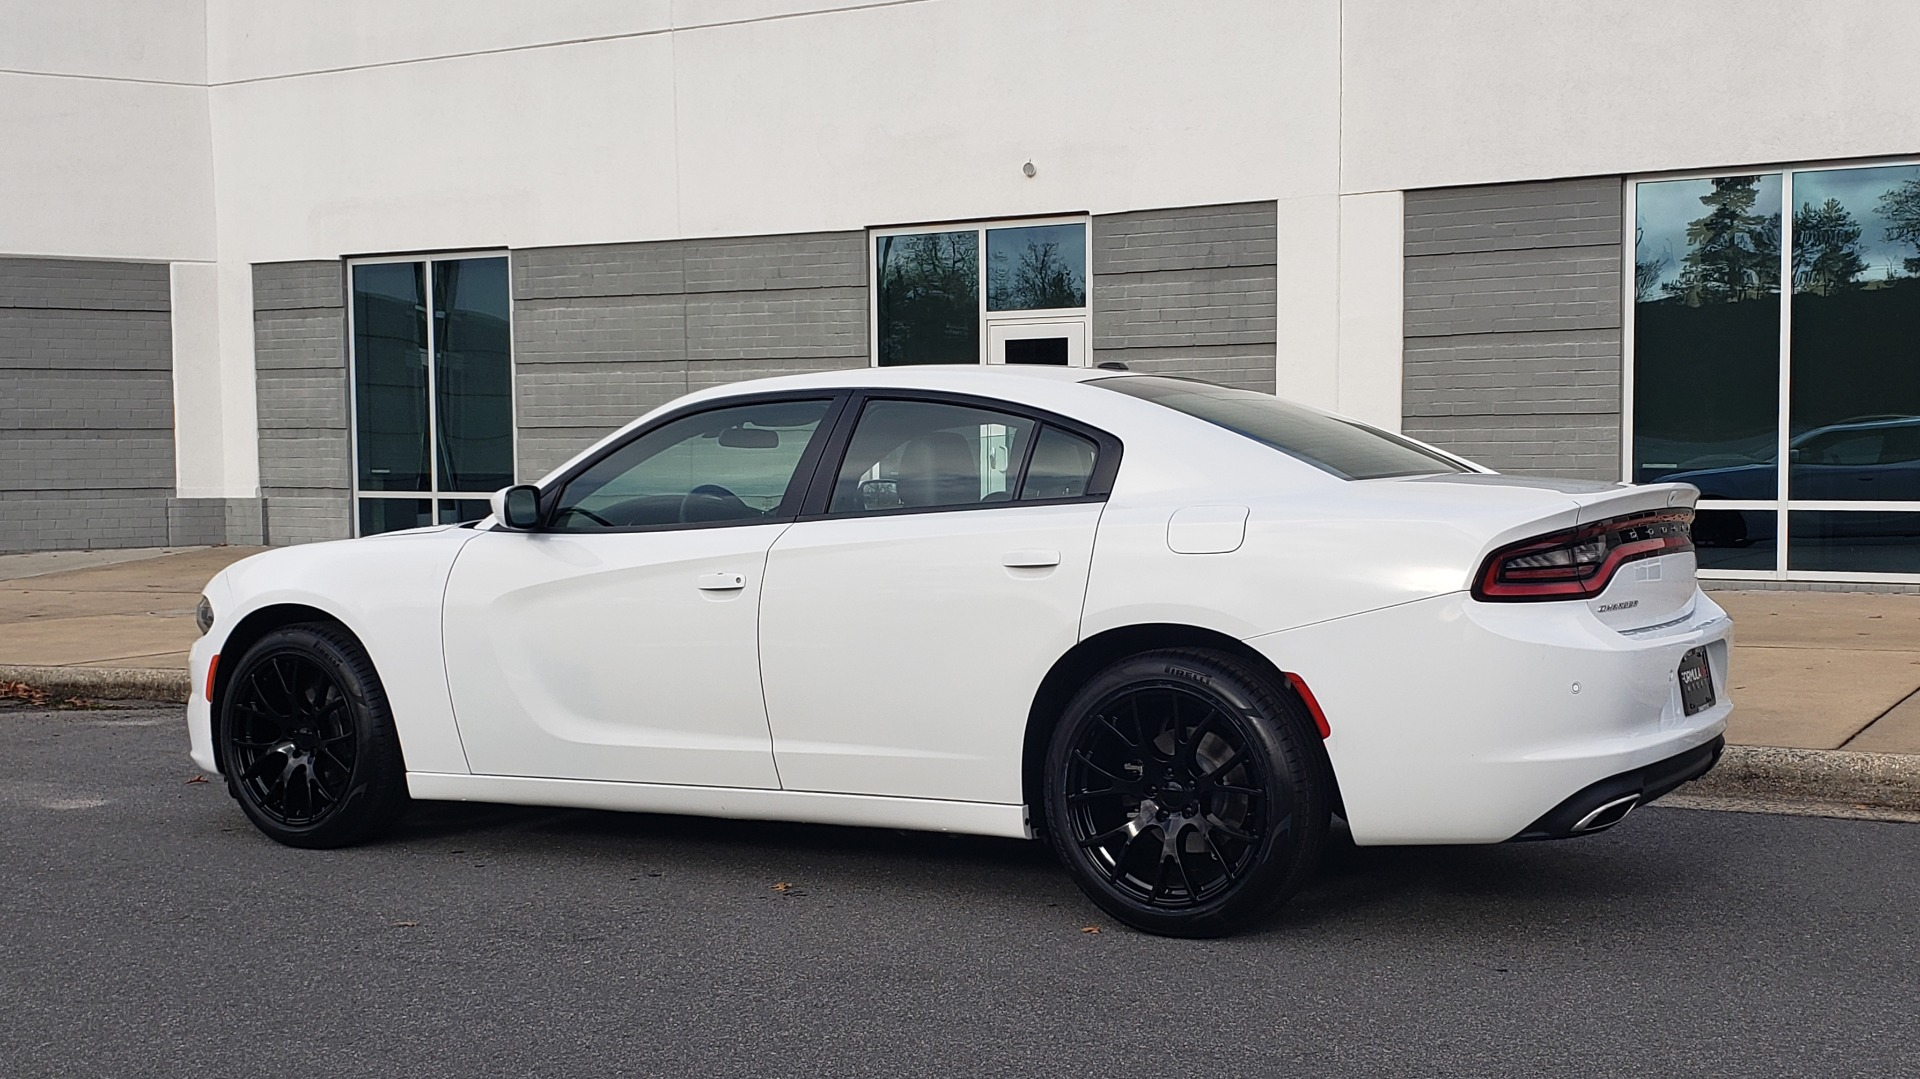 Used 2020 Dodge CHARGER SXT / RWD / V6 / 8-SPD AUTO / LTHR / HTD STS / SUNROOF / REARVIEW for sale $25,995 at Formula Imports in Charlotte NC 28227 8